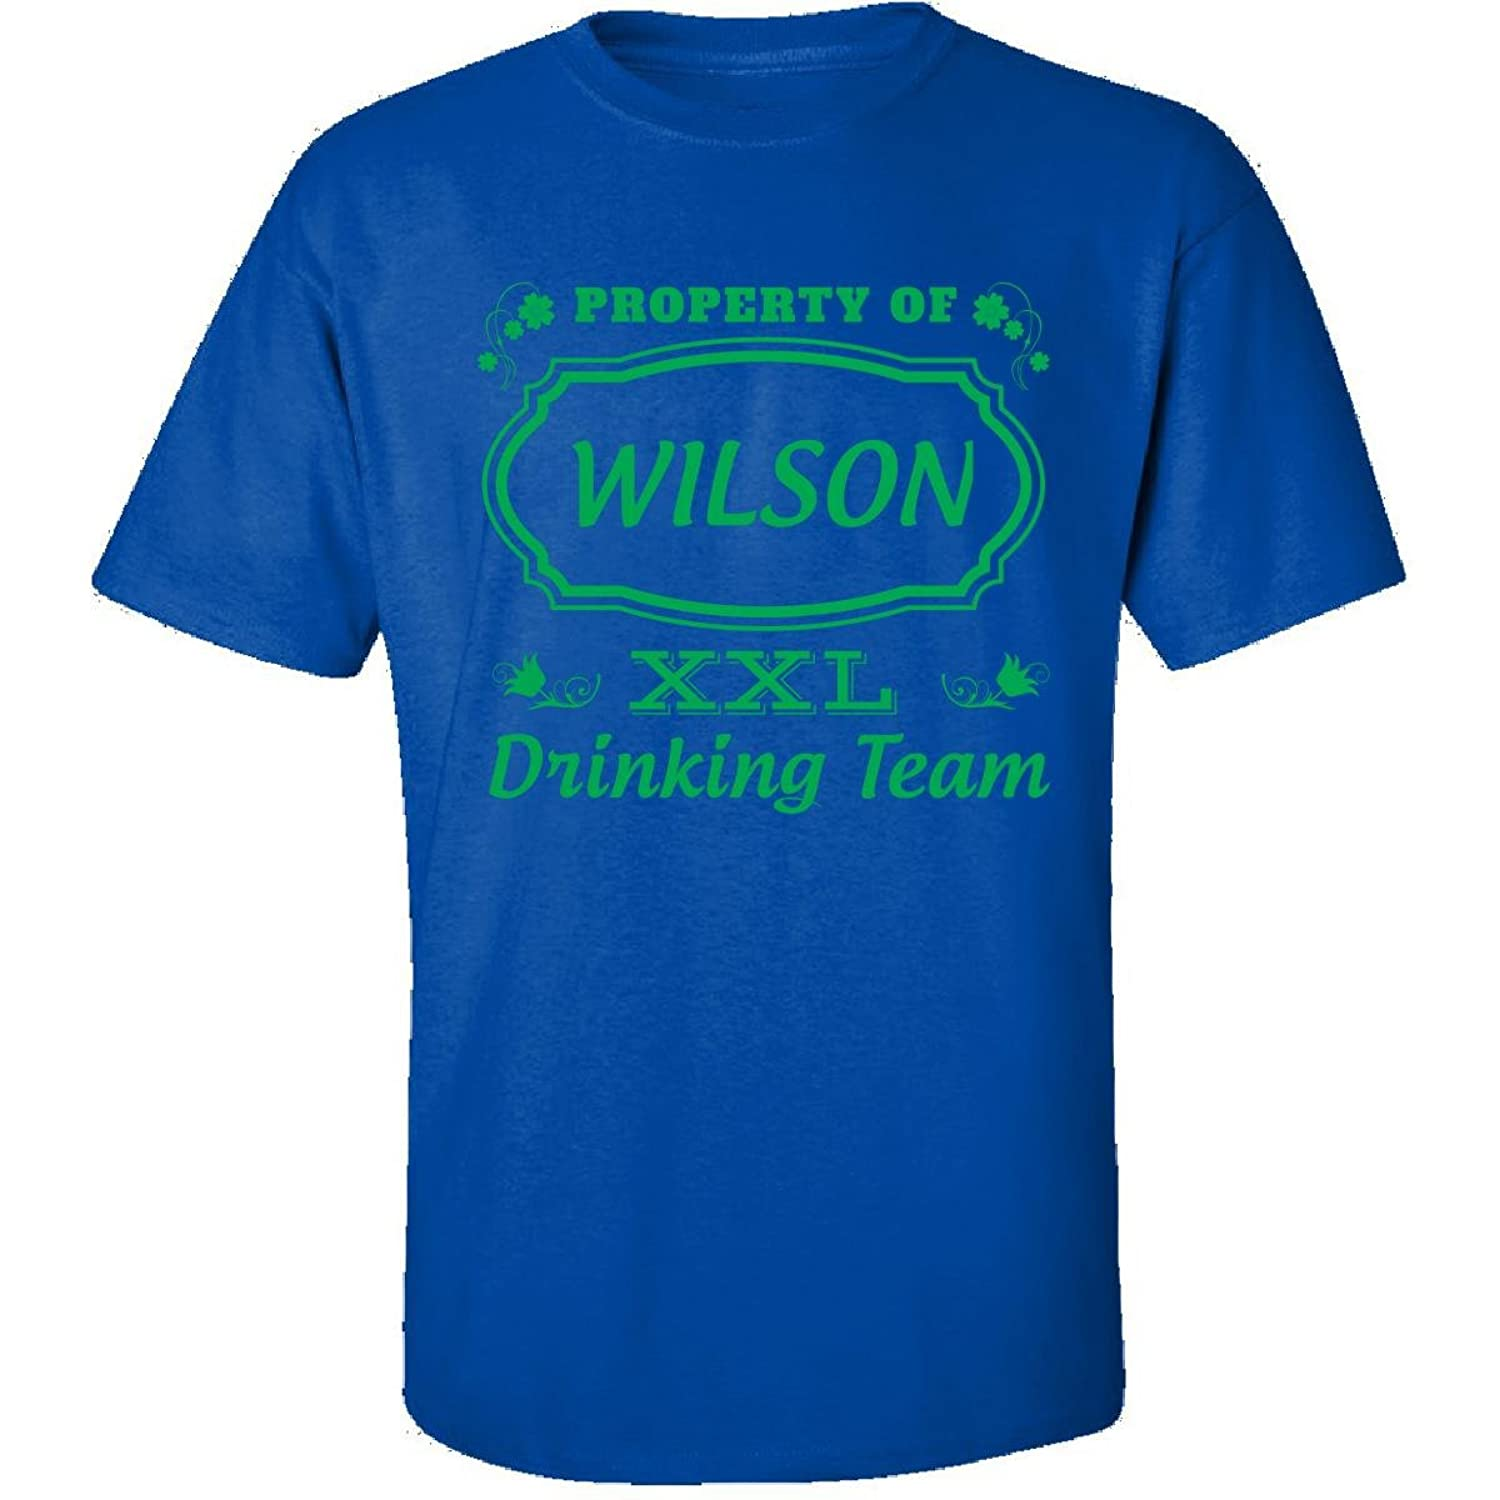 Property Of Wilson St Patrick Day Beer Drinking Team - Adult Shirt